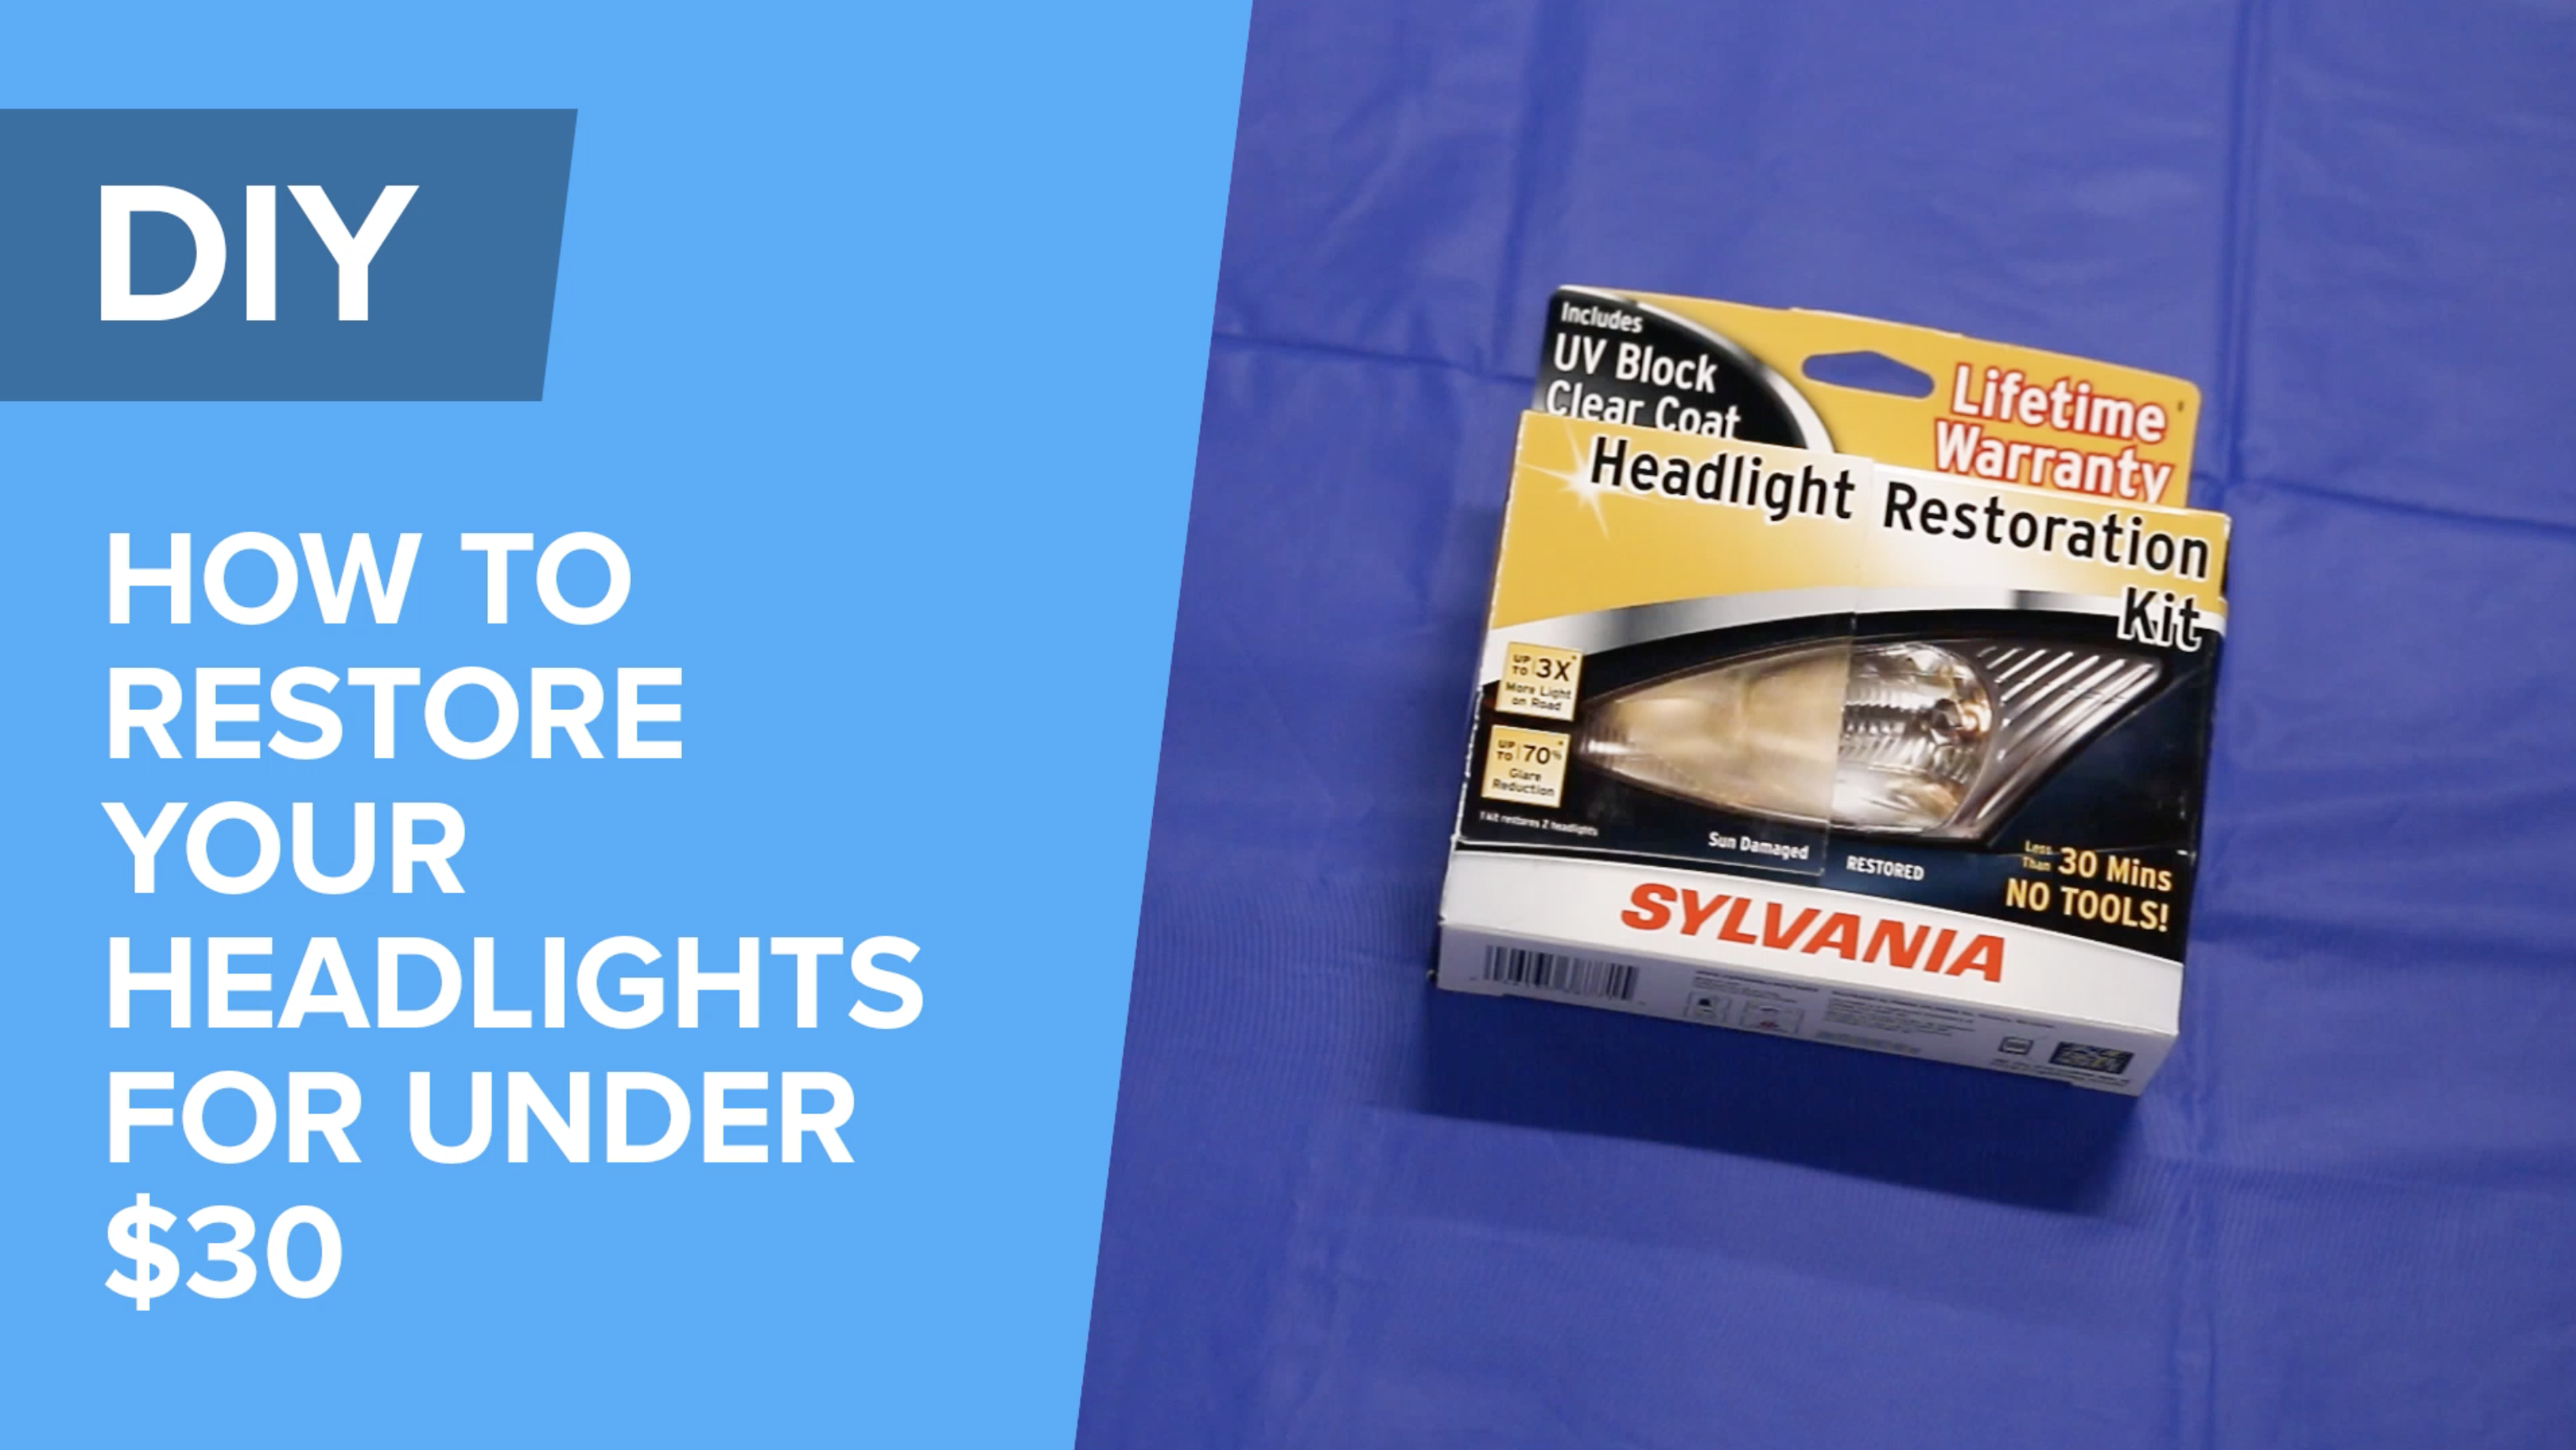 How To Restore Your Headlights For Under $30